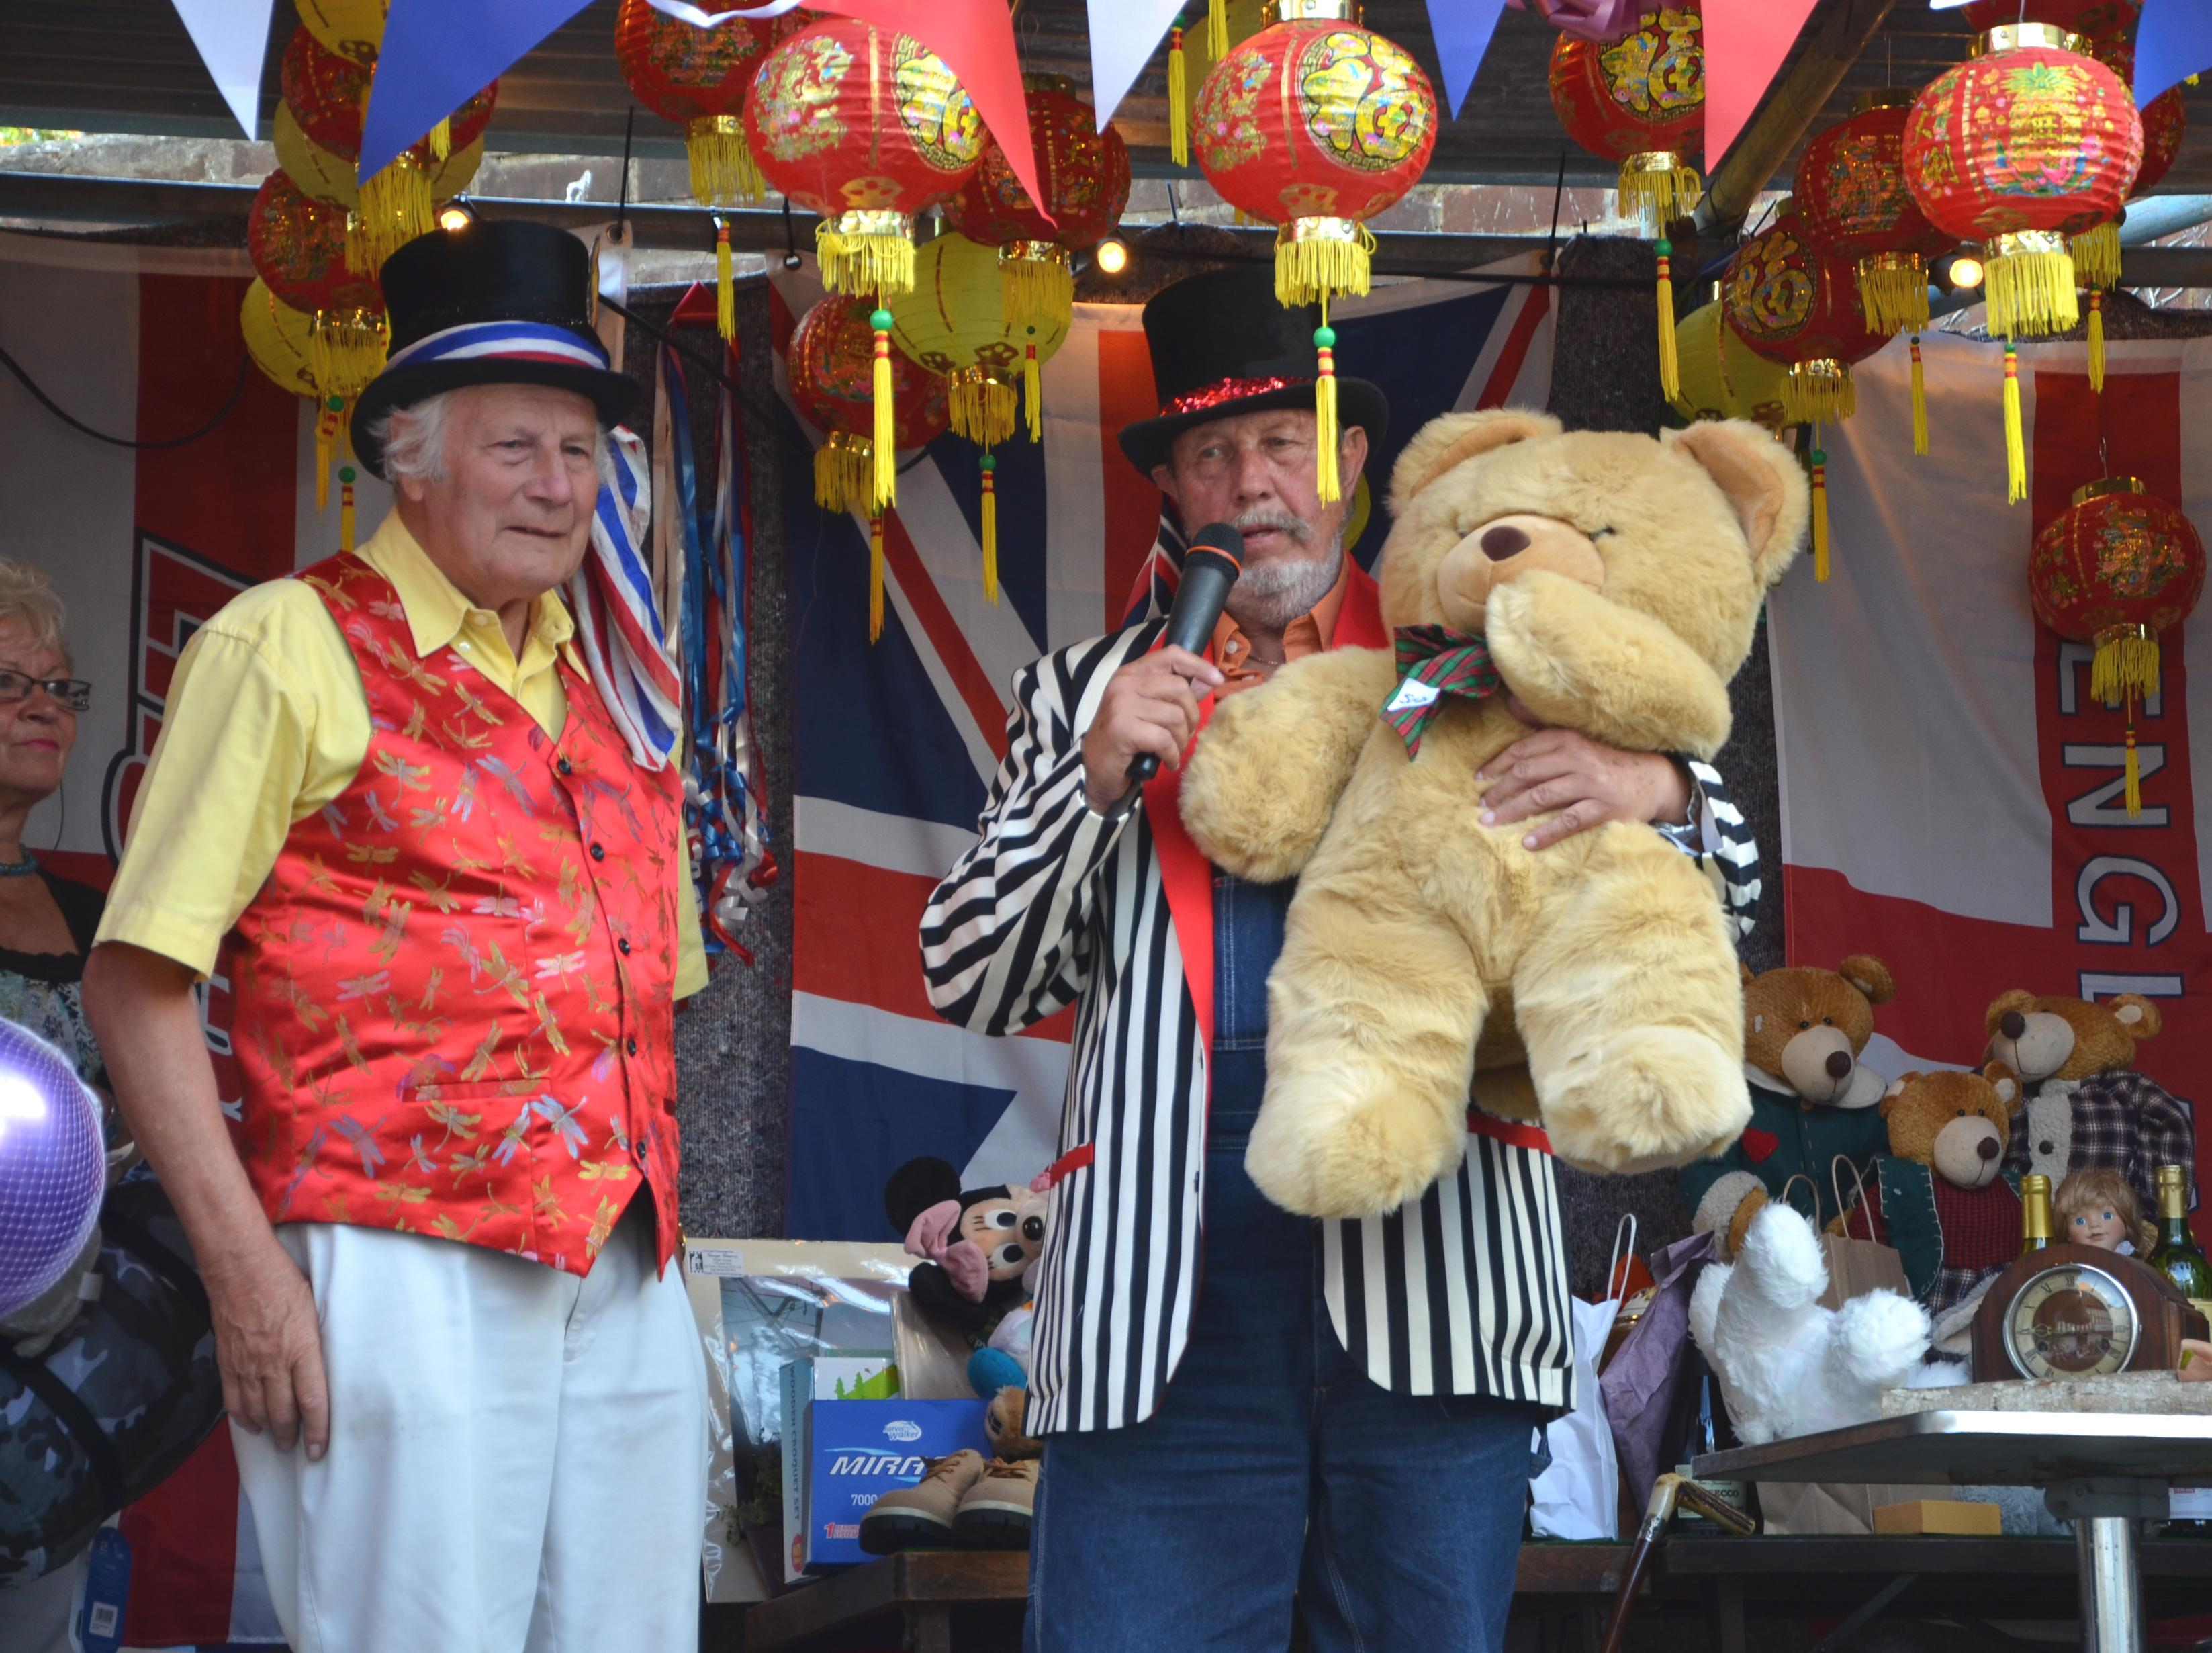 Ian  Porter and Deeday White on stage at Reeves corner, auctioning a teddy bear, donated for the auction.